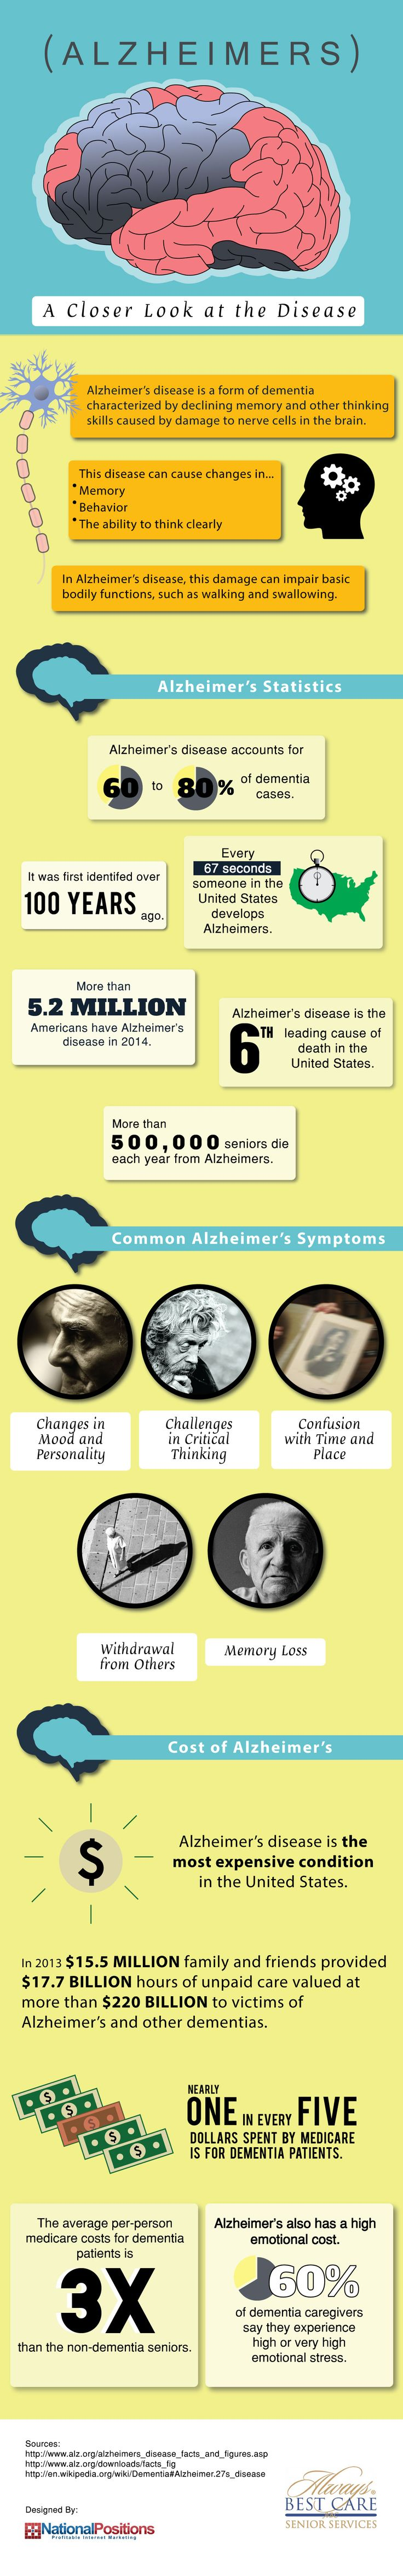 Infographic: Alzheimers A Closer Look at the Disease #infographic